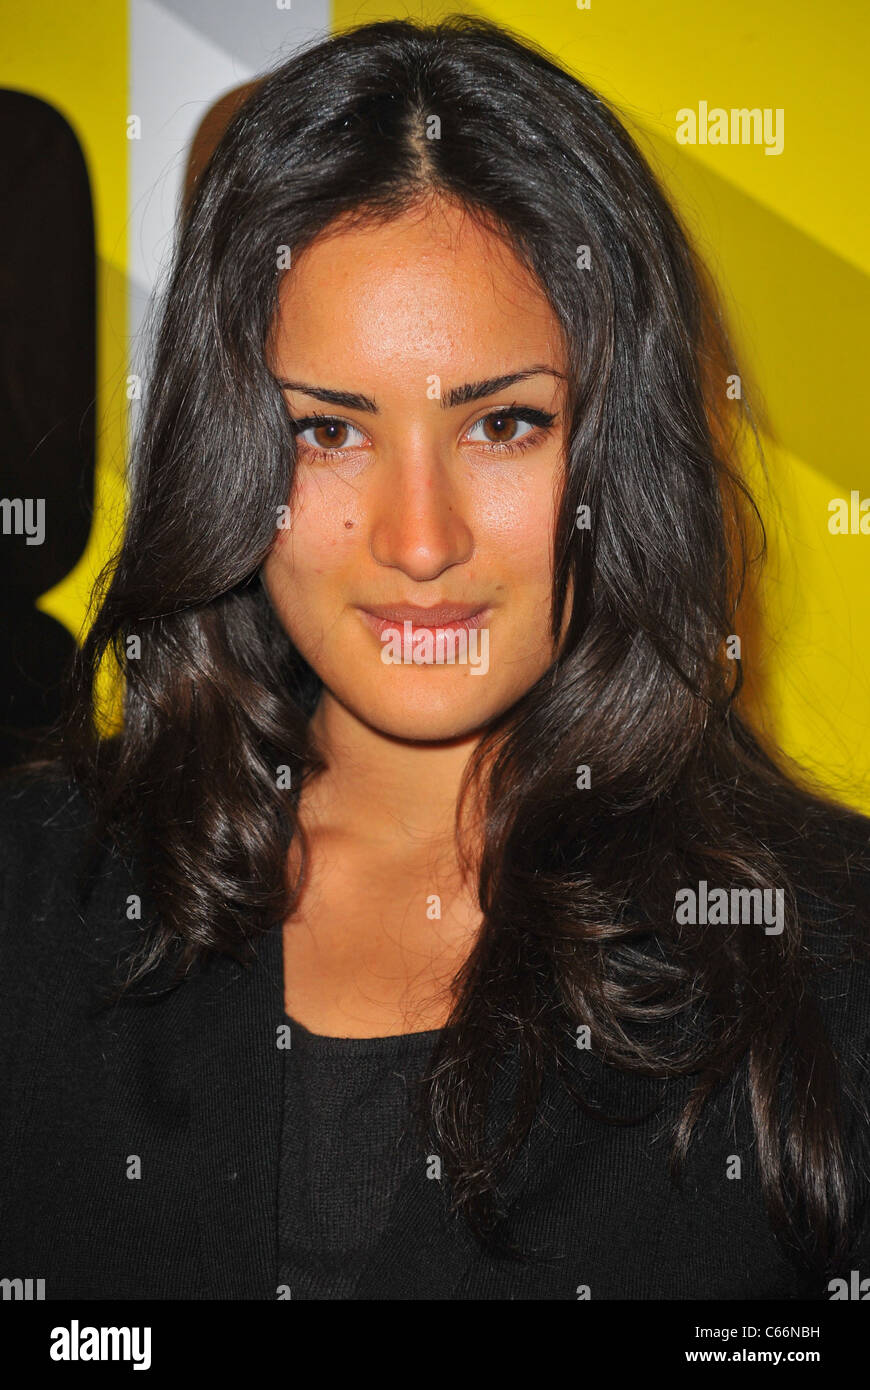 Sarah Kazemy at arrivals for MARGIN CALL Premiere, MoMA Museum of Modern Art, New York, NY March 23, 2011. Photo - Stock Image